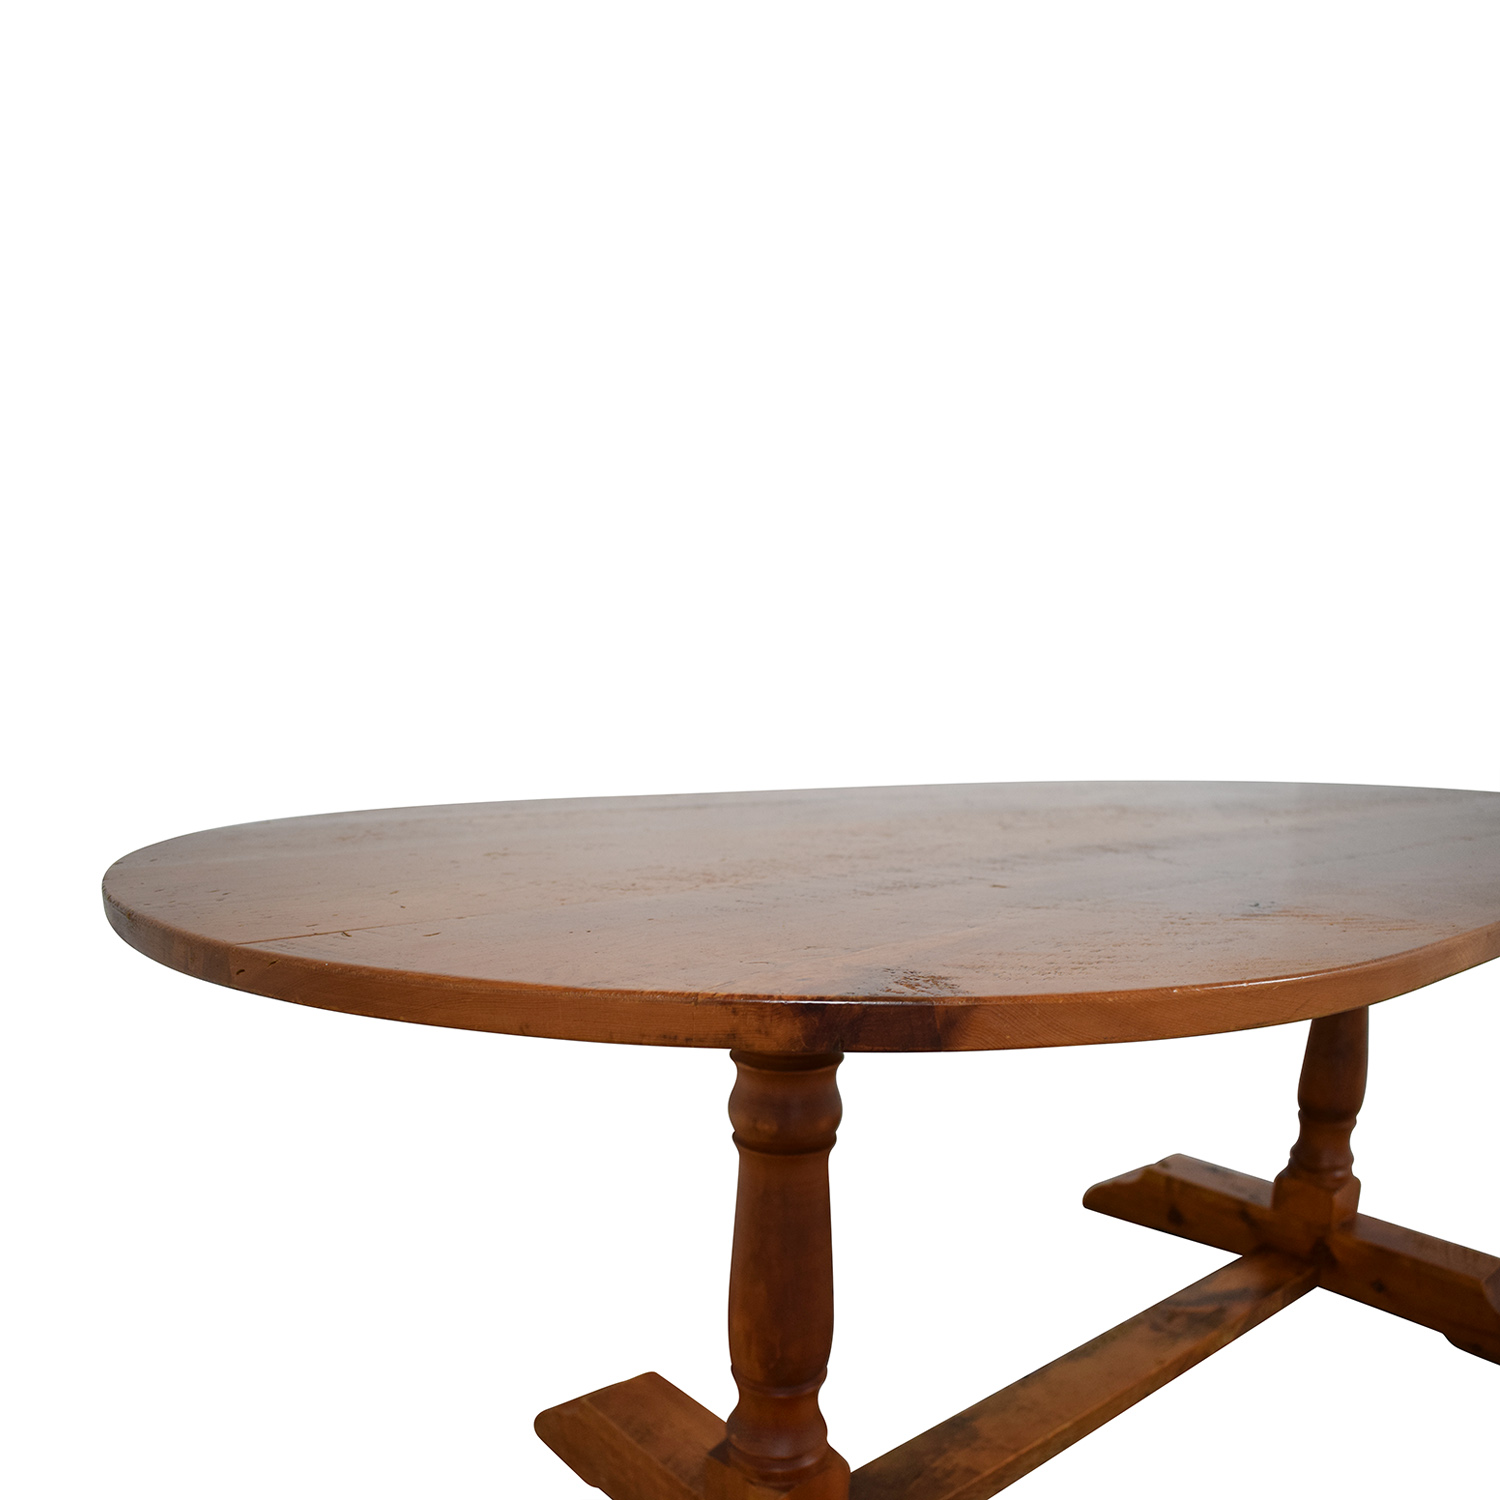 Country Willow County Willow Oval Dining Table price